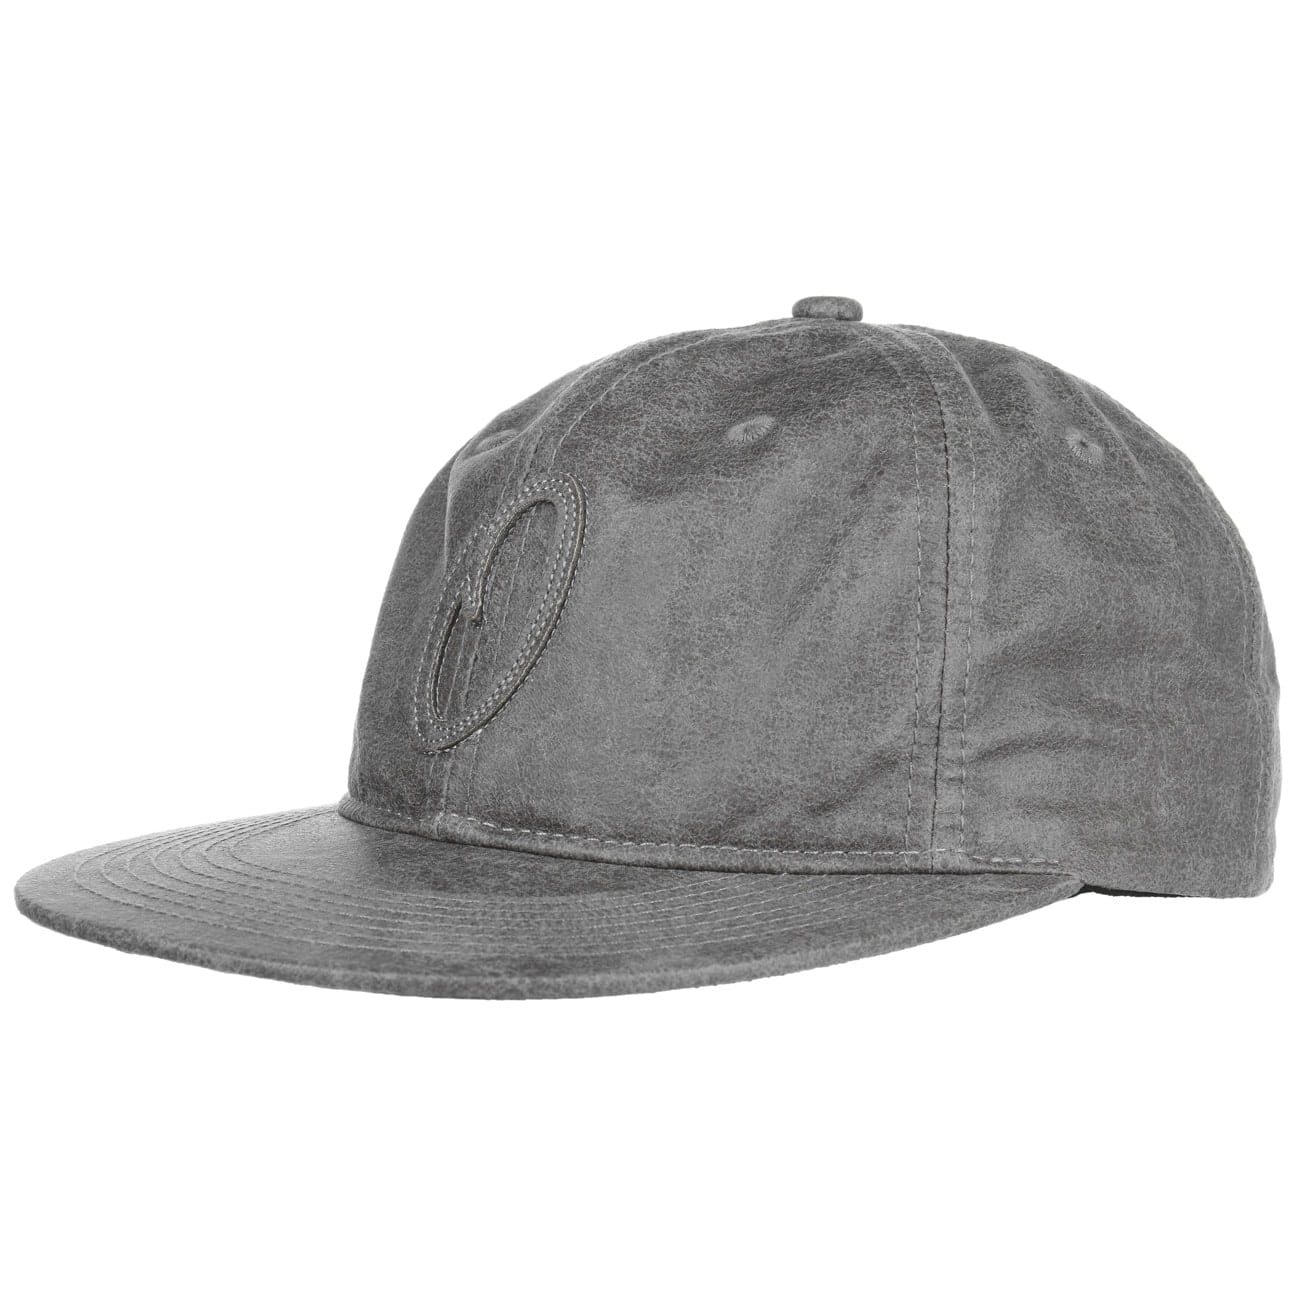 Casquette Suede Pitch by Official Headwear  baseball cap